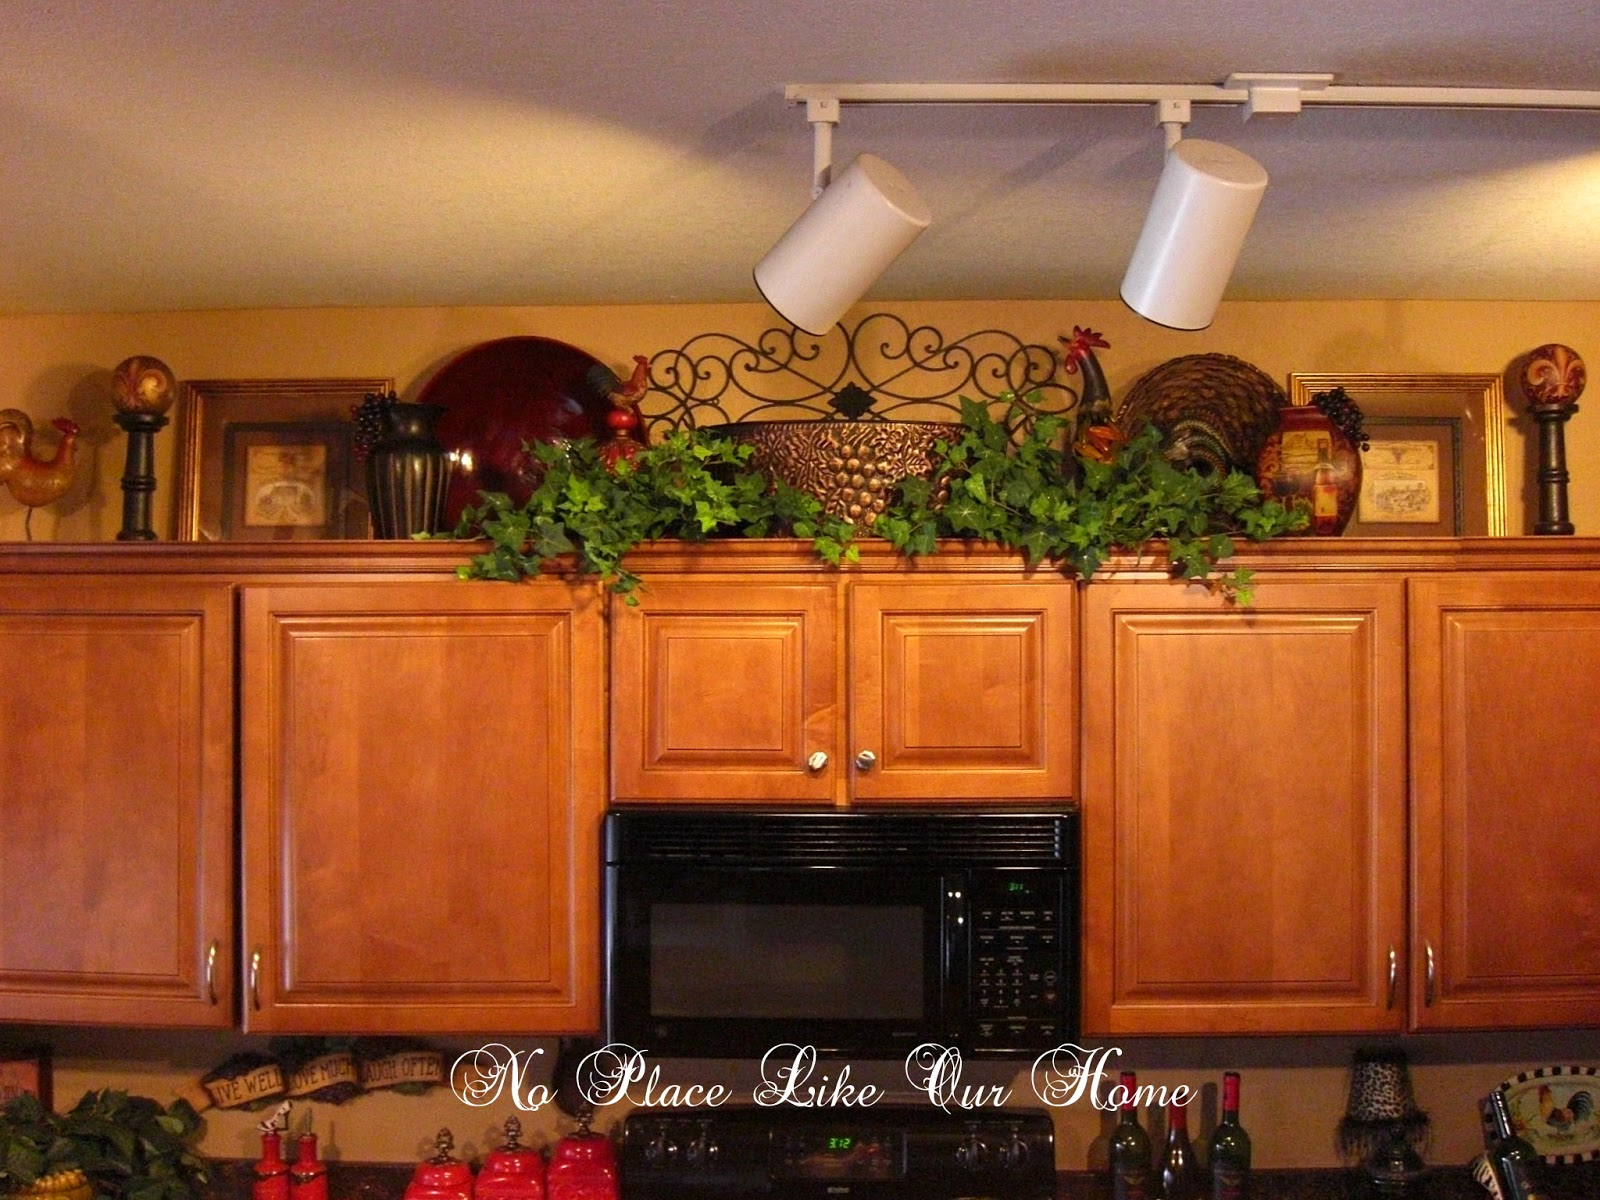 No Place Like Our Home New Kitchen Vignette S